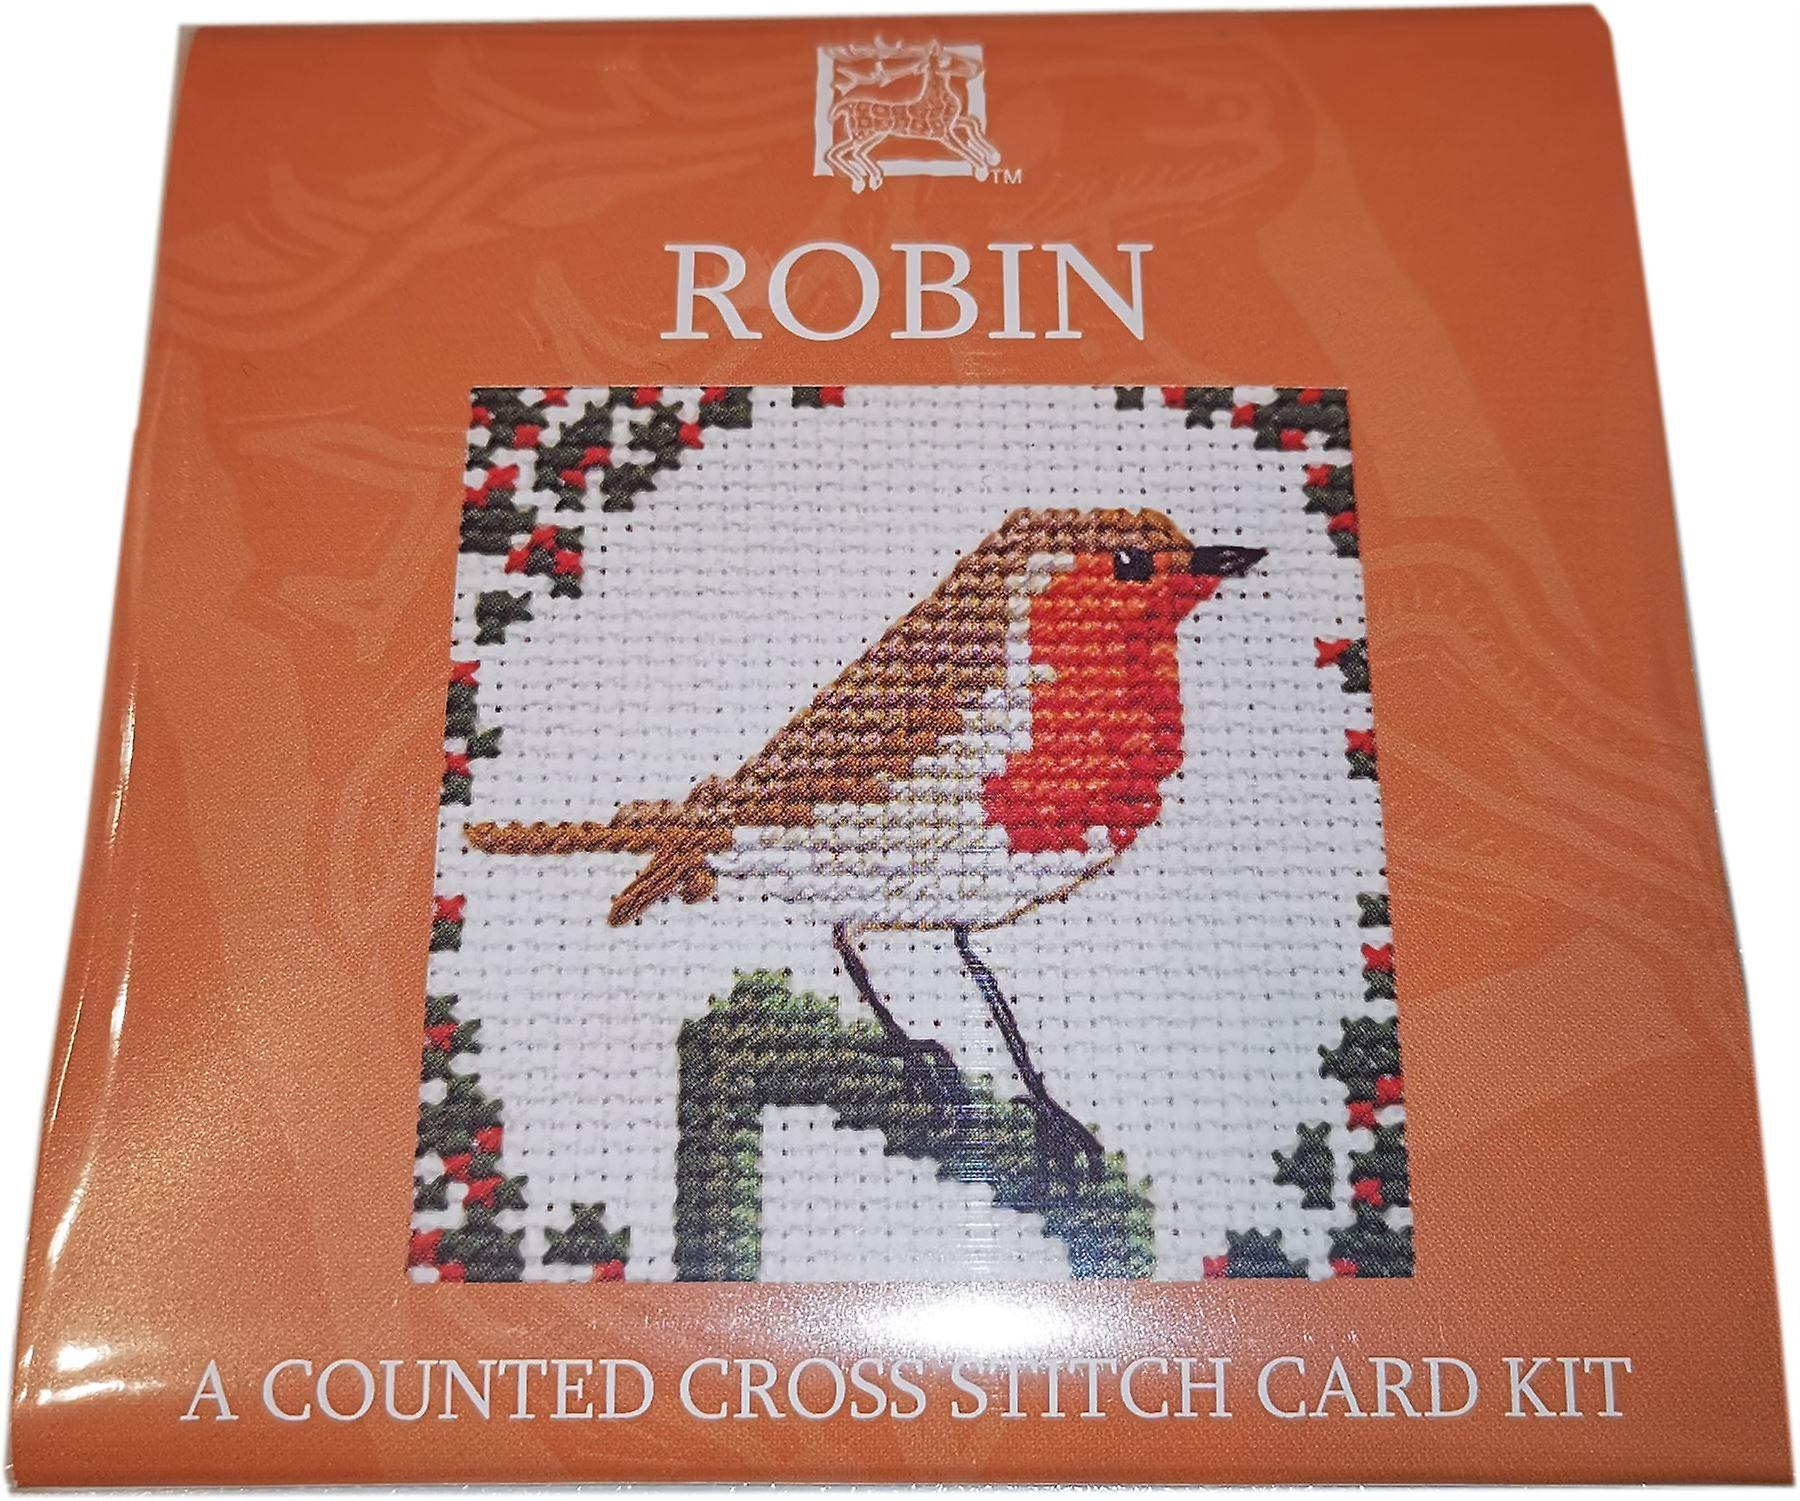 Textile Heritage Counted Cross Stitch Robin Card Kit